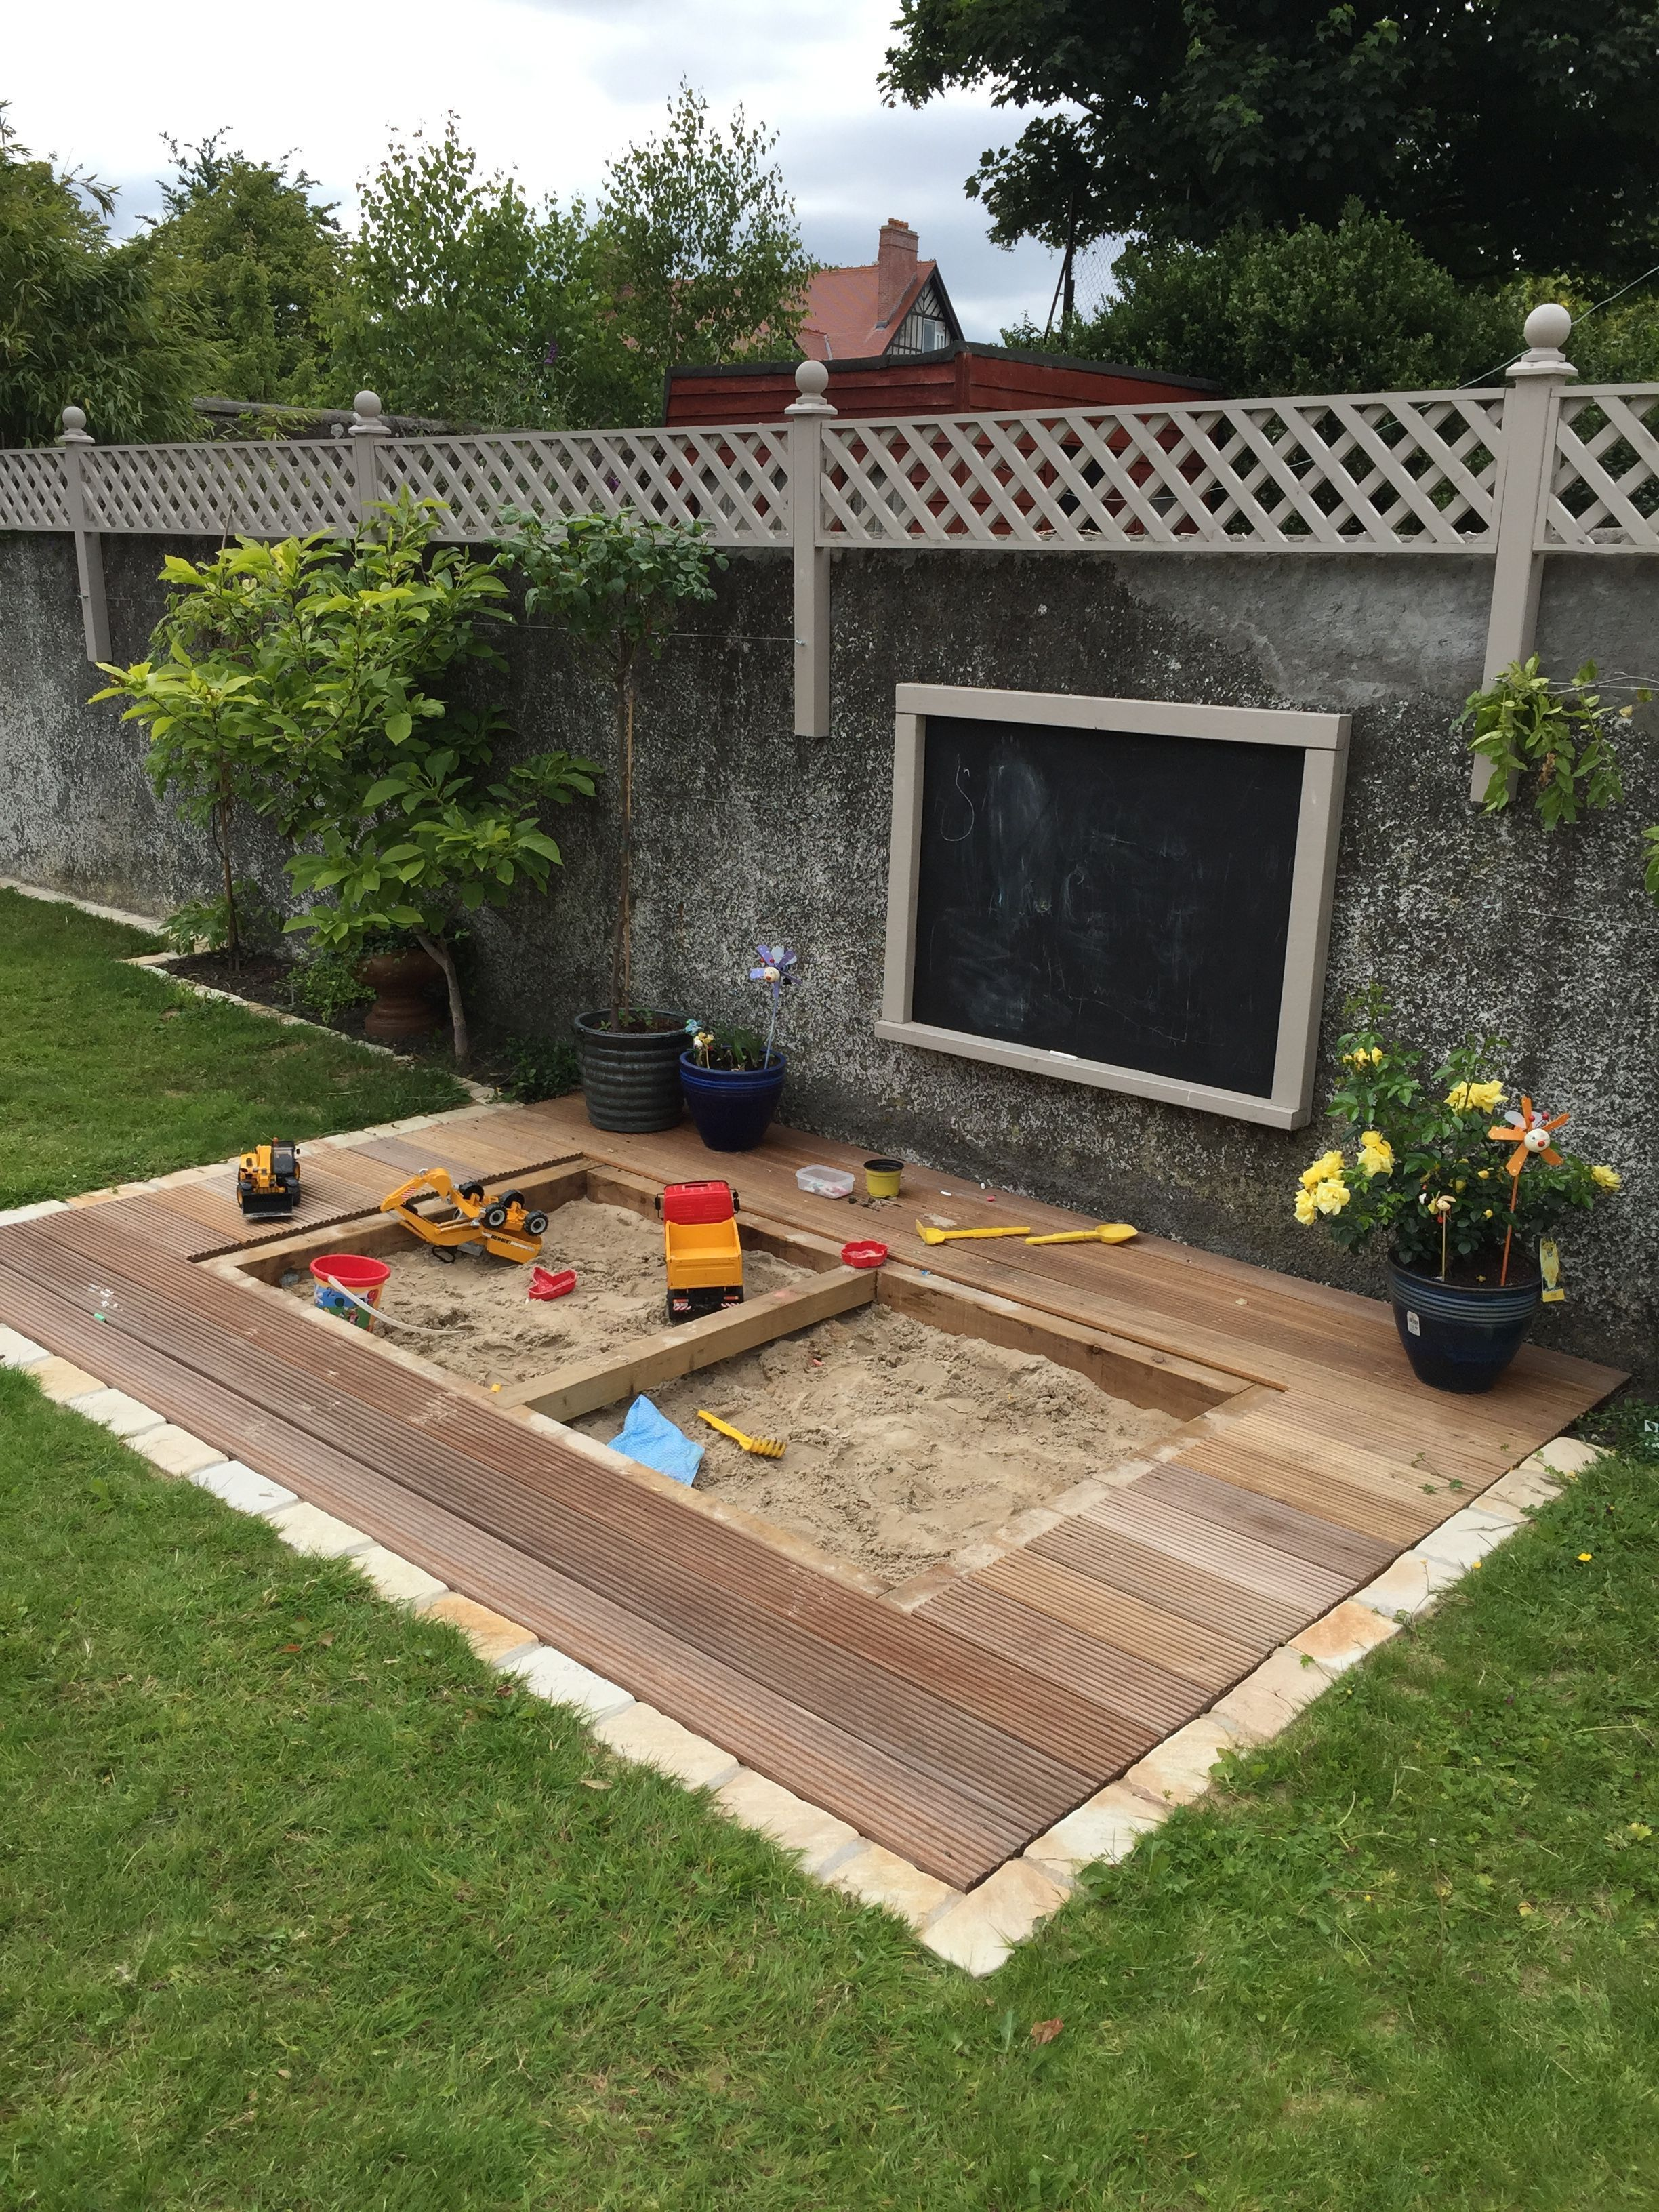 finished article - sandpit in deck #buildplayhouse #diyplayhouse